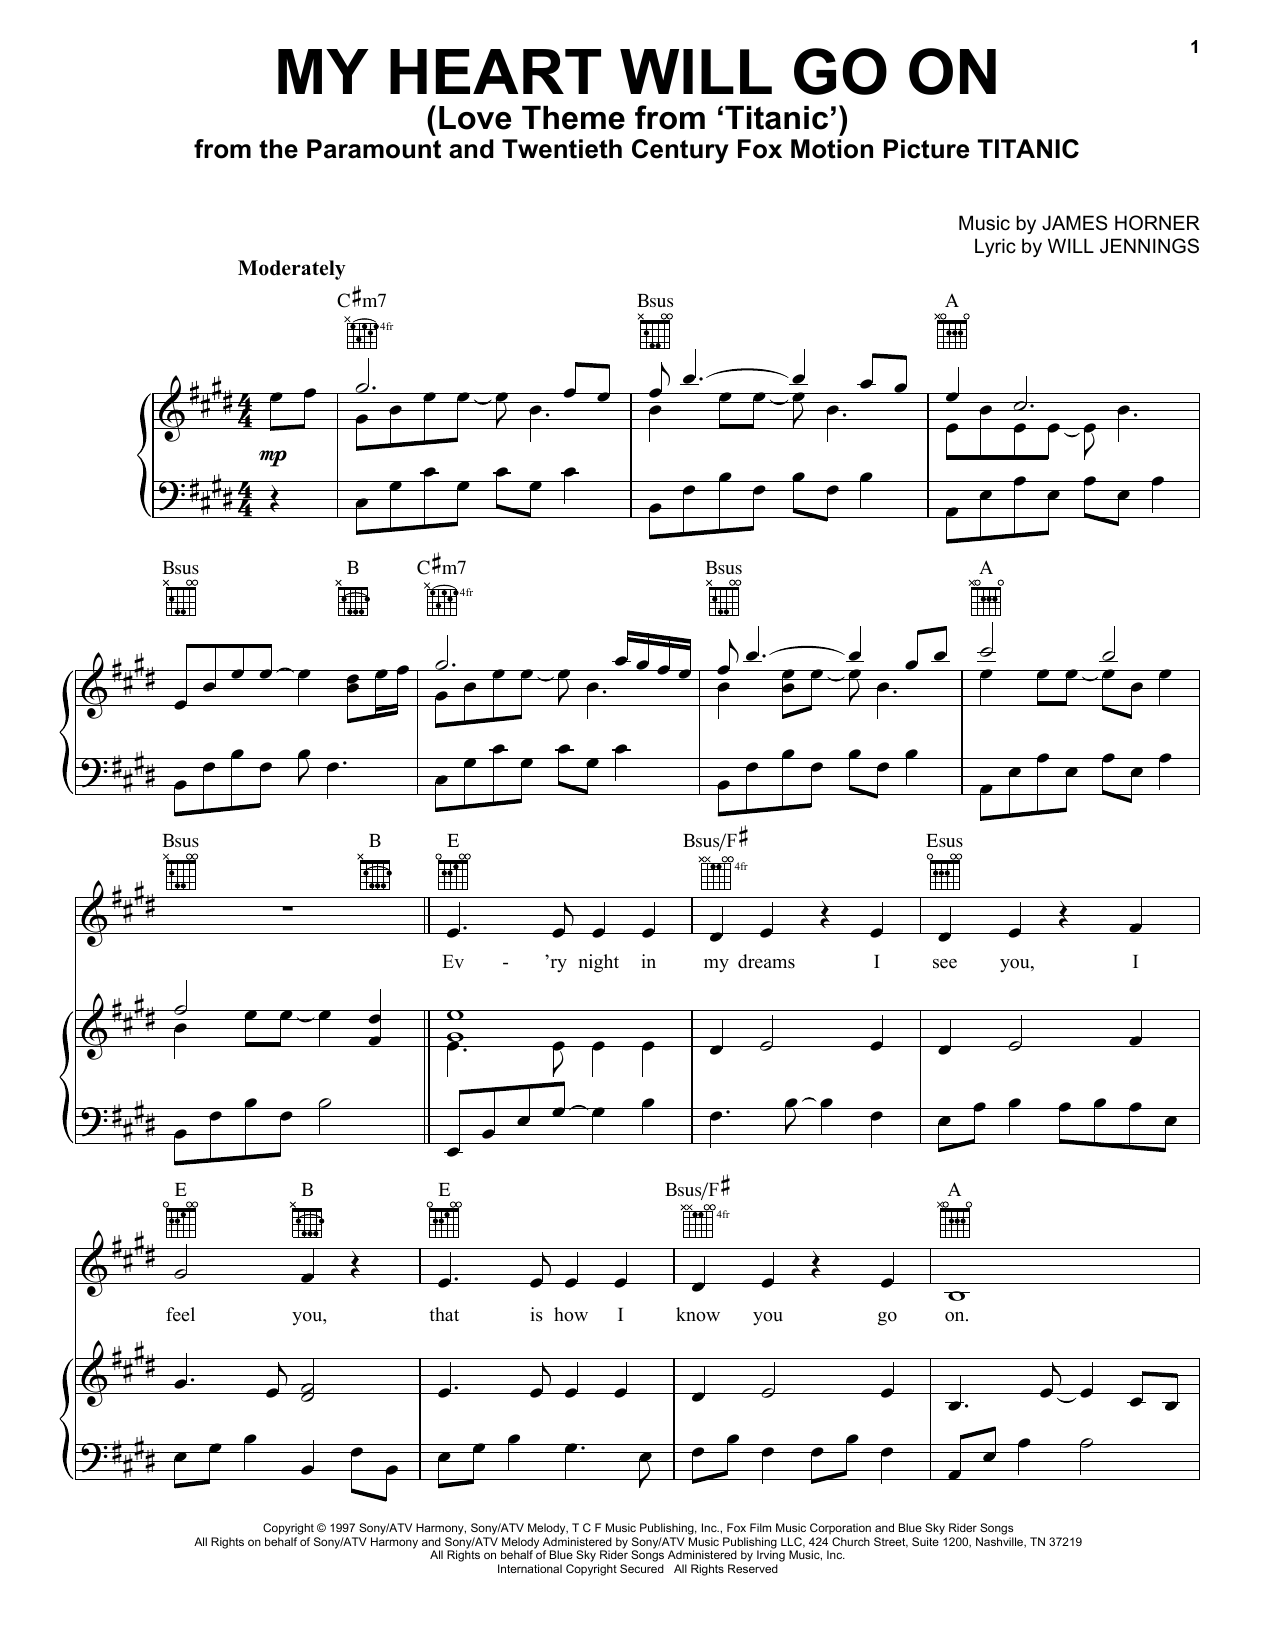 Celine Dion My Heart Will Go On (Love Theme from Titanic) sheet music notes printable PDF score